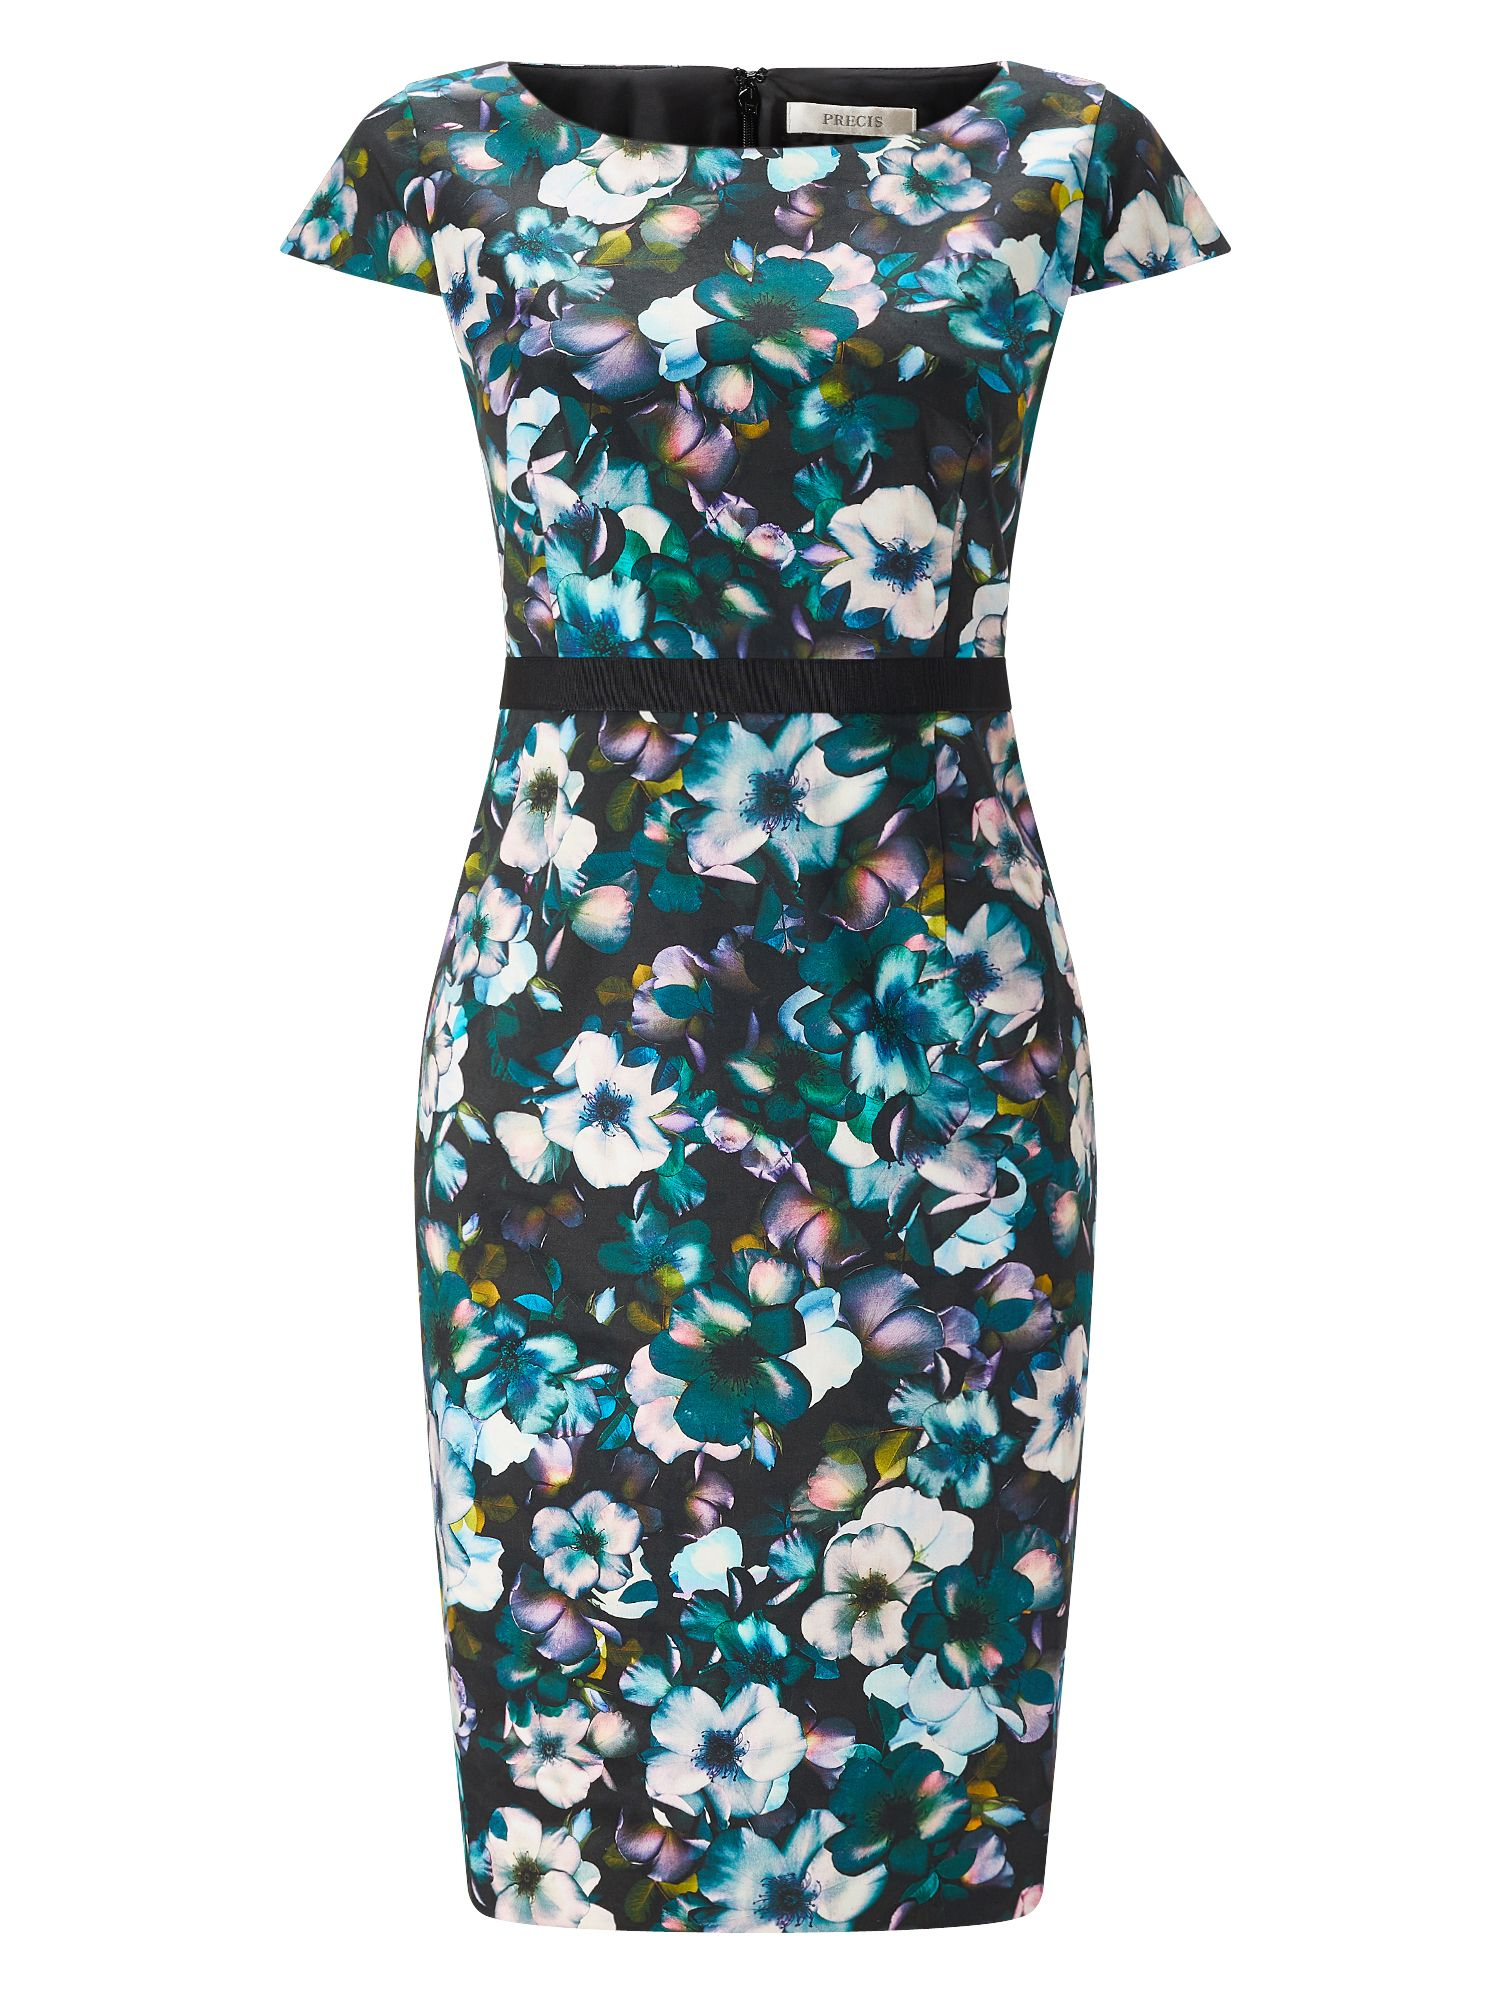 Precis Petite Petite Orchid Print Dress, Black Multi